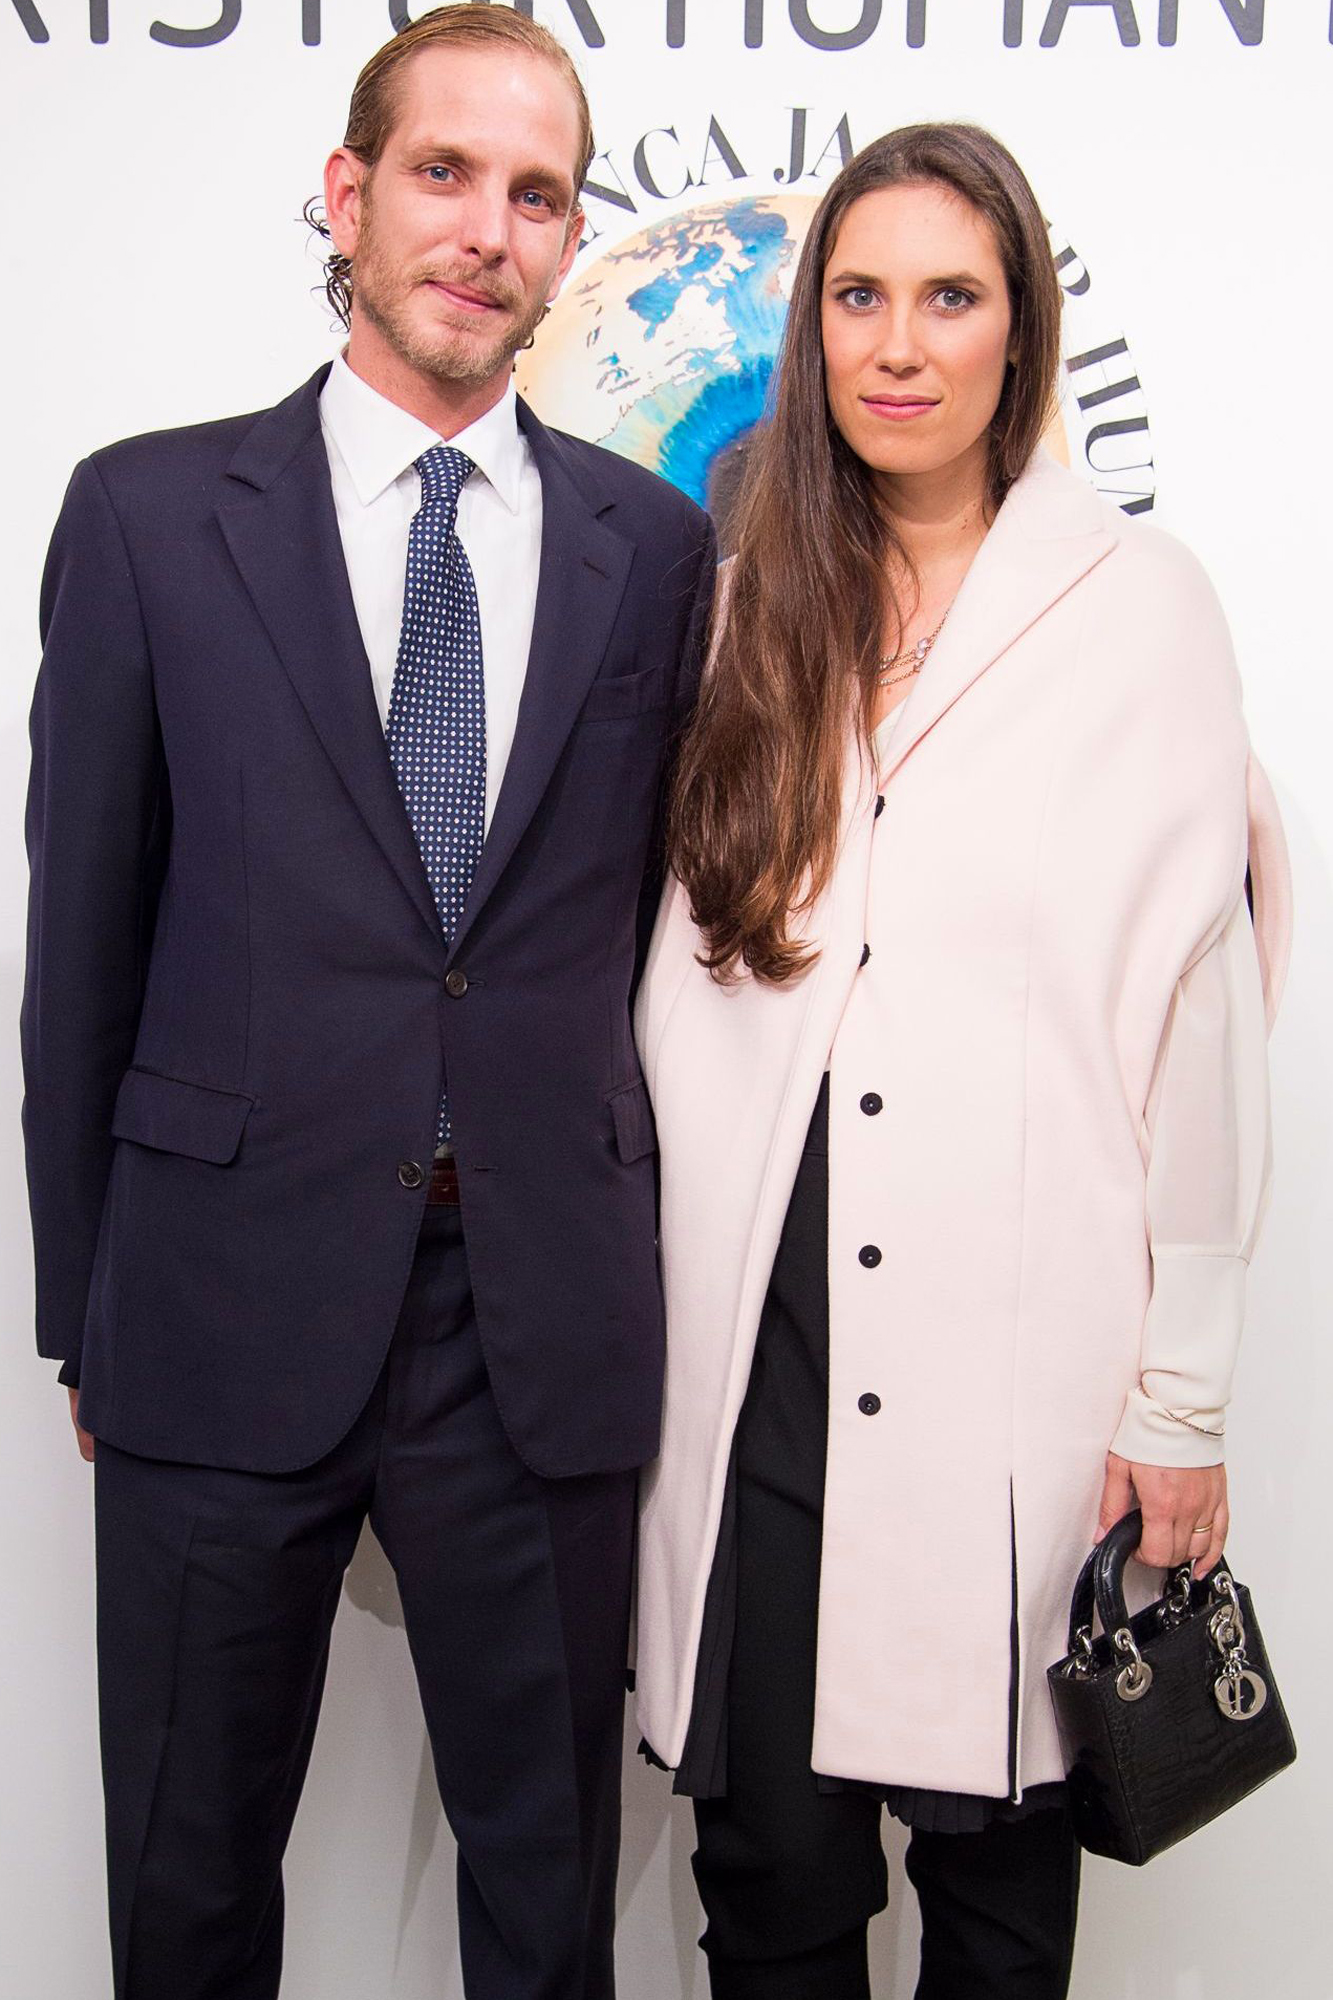 Bianca Jagger hosts 'Arts for Human Rights' Humanitarian Rights Foundation dinner, London, Britain - 14 Oct 2014